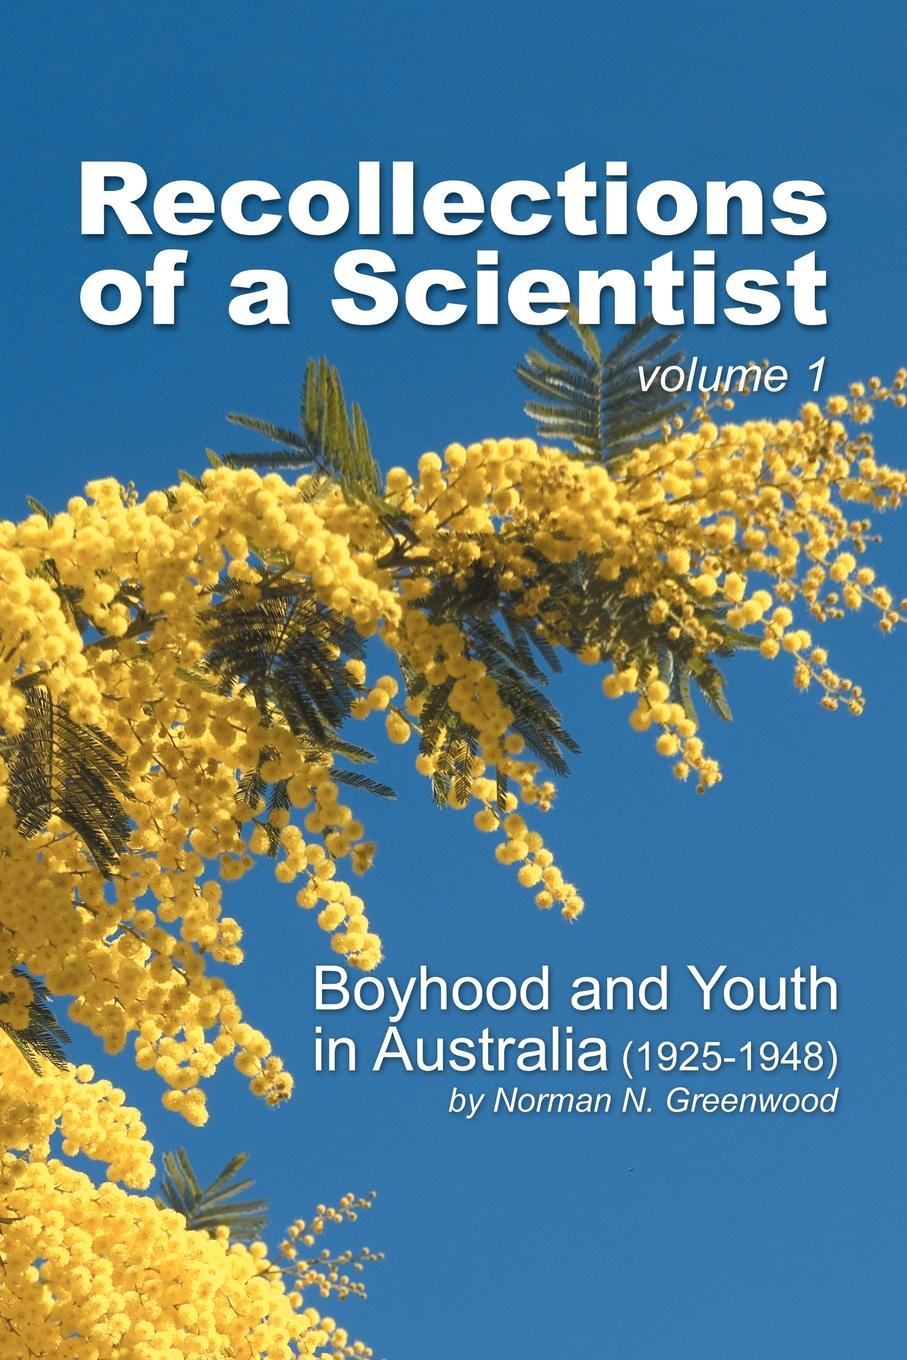 Norman N. Greenwood Recollections of a Scientist. Boyhood and Youth in Australia (Volume 1) tolstoy l childhood boyhood youth